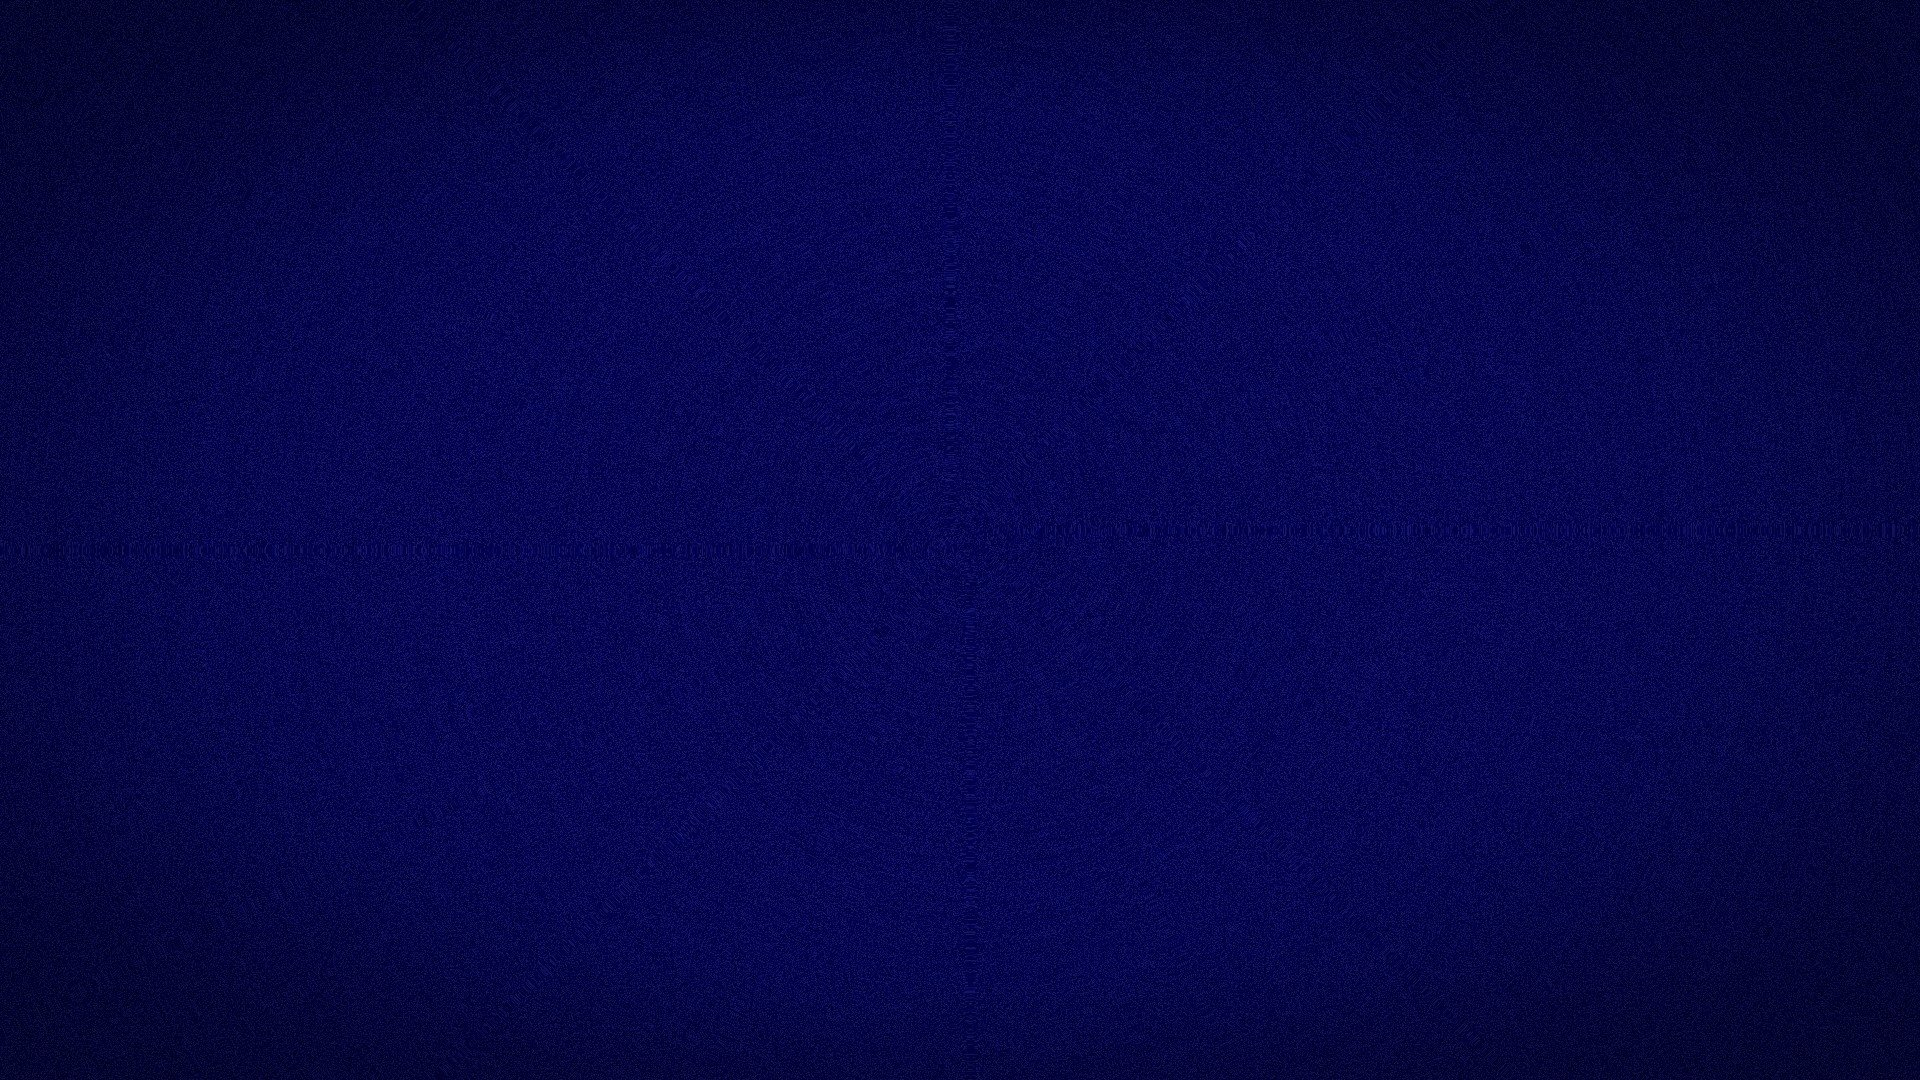 Blue Color Background Wallpaper - WallpaperSafari